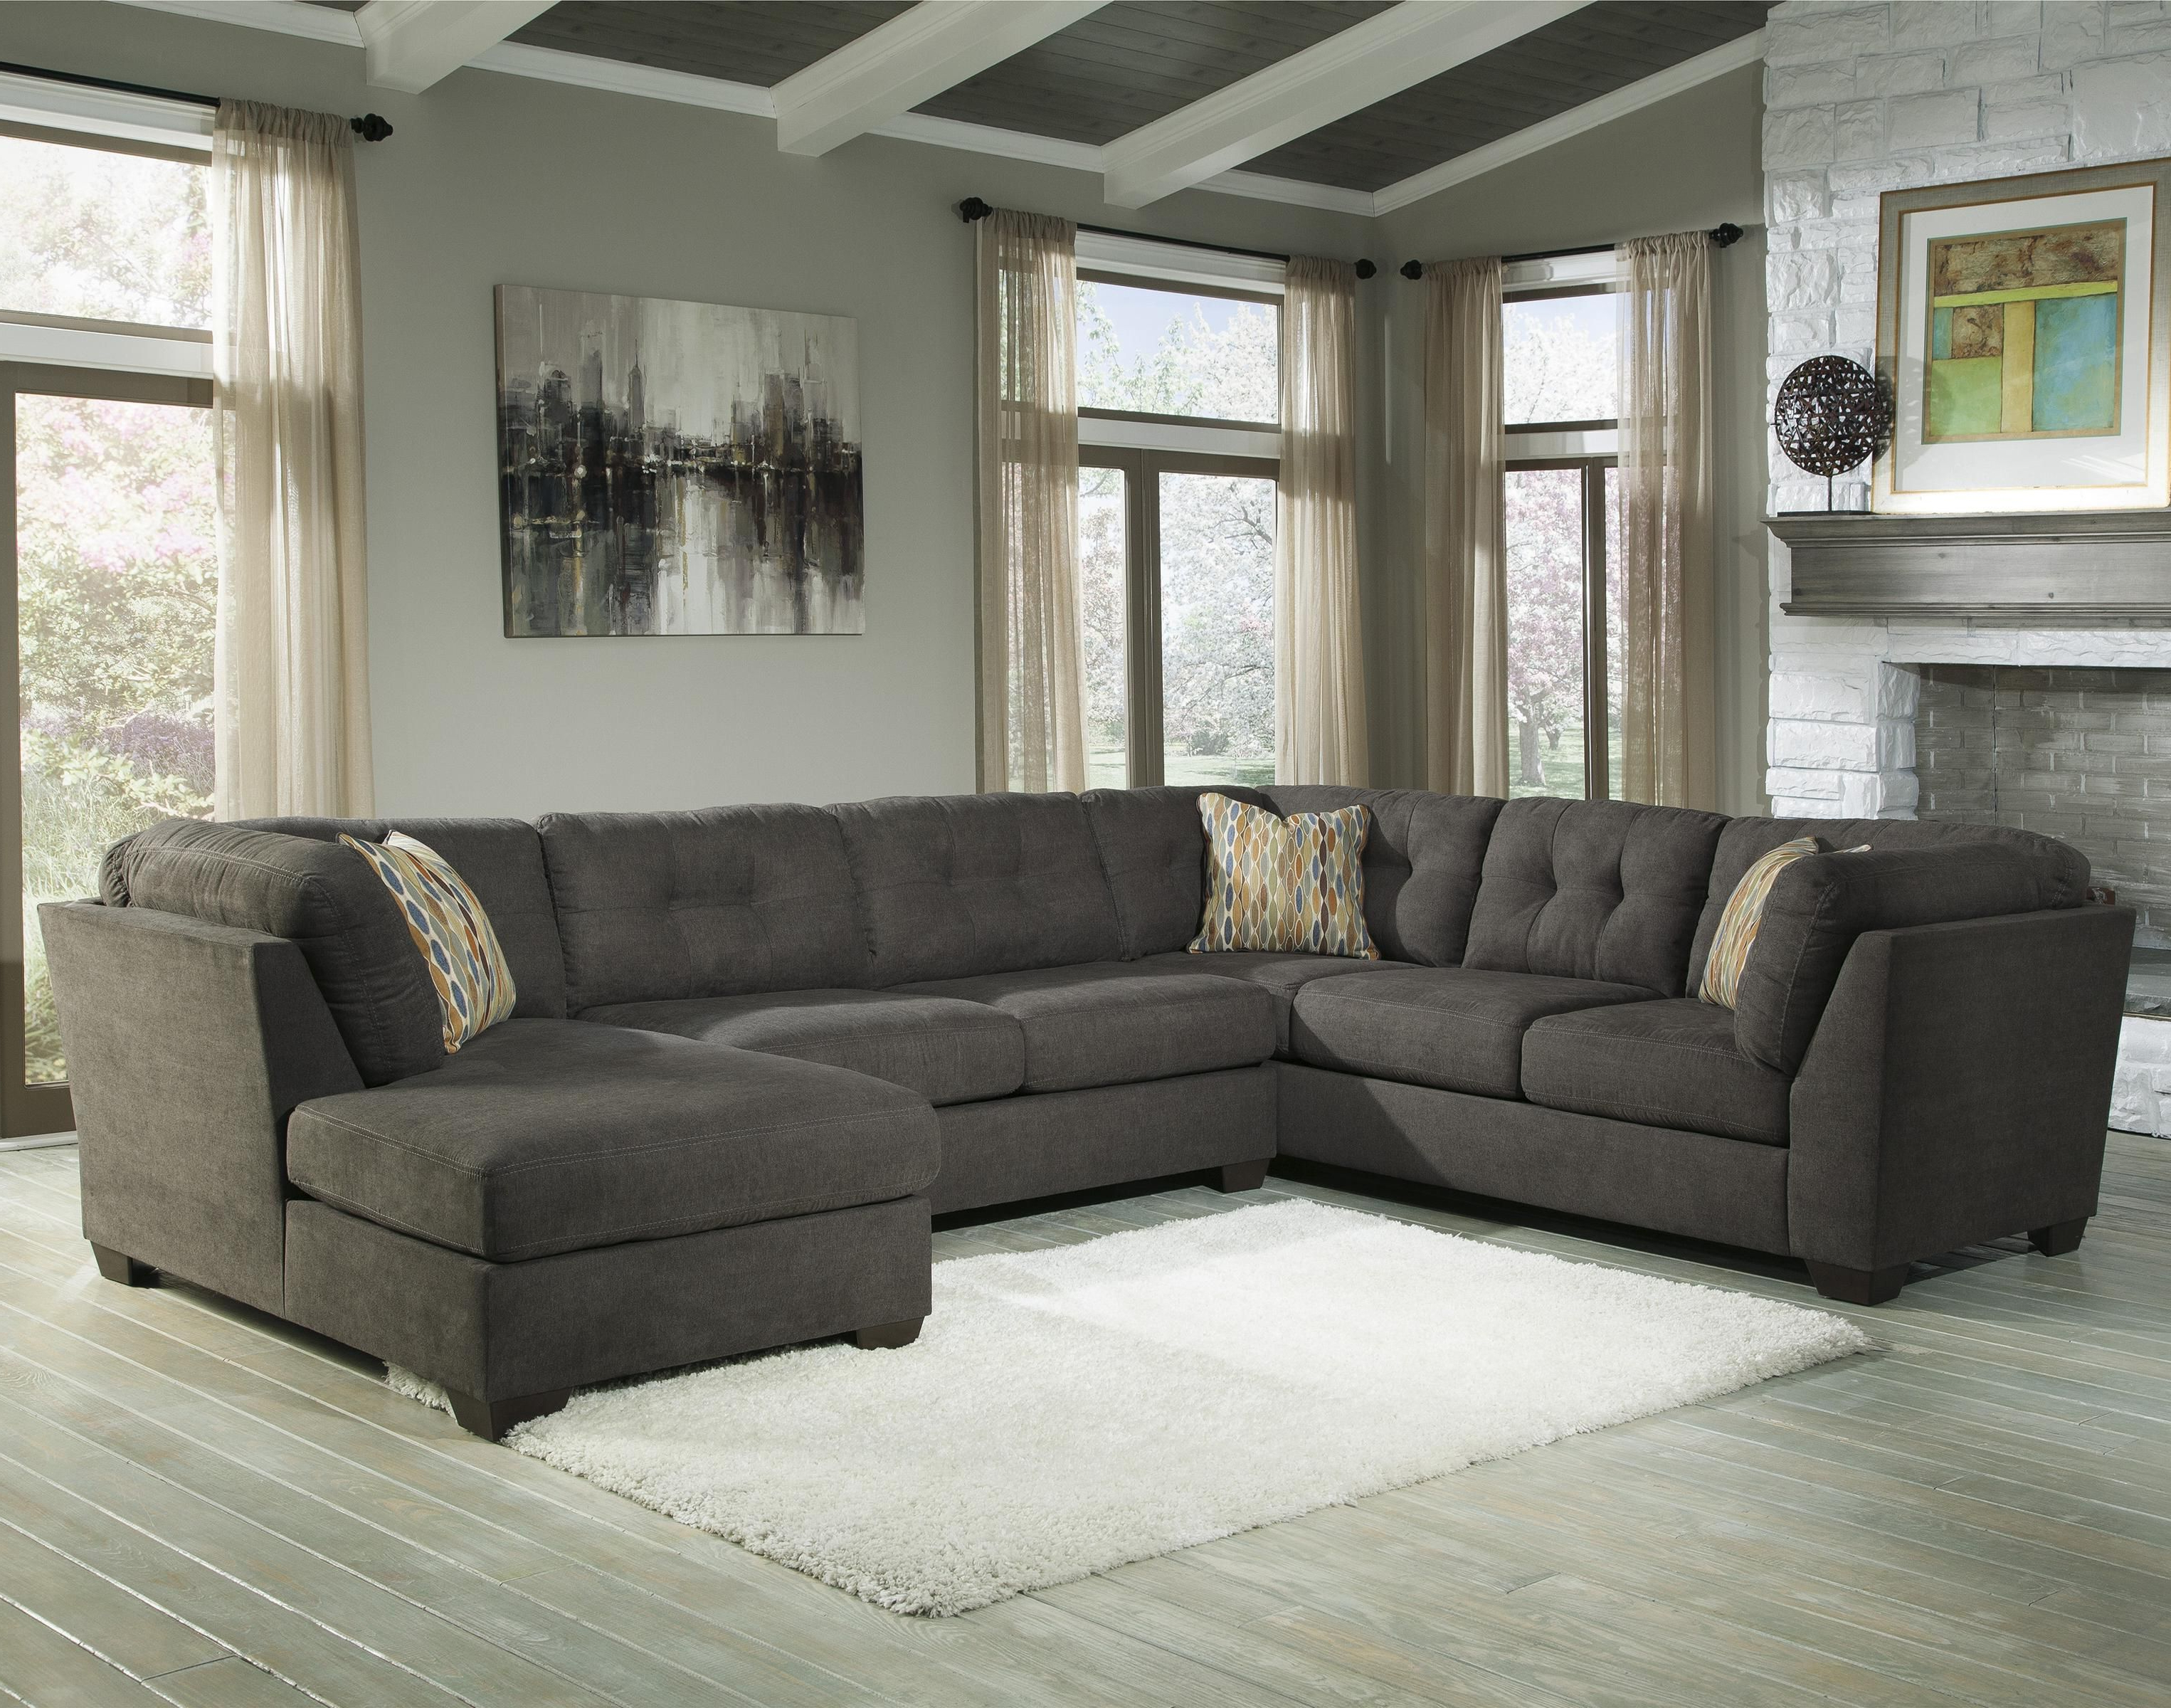 Delta City – Steel 3 Piece Modular Sectional With Right Chaise Within Newest Haven Blue Steel 3 Piece Sectionals (View 17 of 20)